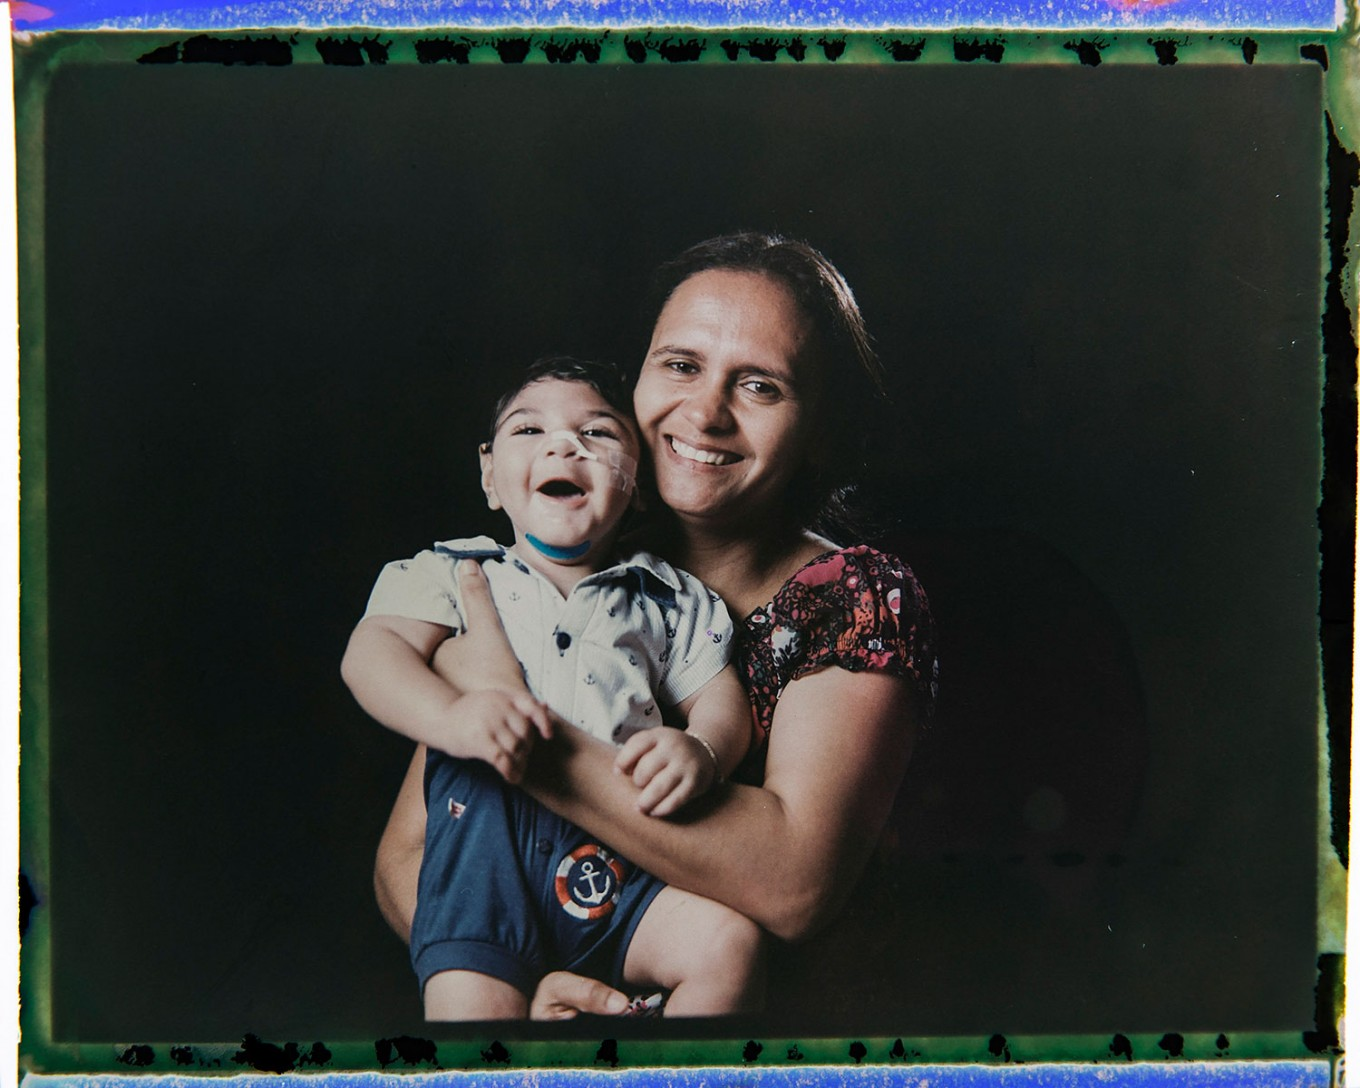 In this Sept. 29, 2016 photo made from a negative recovered from instant film, Rozilene Ferreira poses with her 1-year-old son, Arthur Conceicao, who was born with microcephaly, one of many serious medical problems that can be caused by congenital Zika syndrome, in Recife, Pernambuco state, Brazil. A year after a spike in the number of newborns with the defect known as microcephaly, Brazilian doctors and researchers have seen many of the babies develop swallowing difficulties, epileptic seizures and vision and hearing problems. AP Photo/Felipe Dana